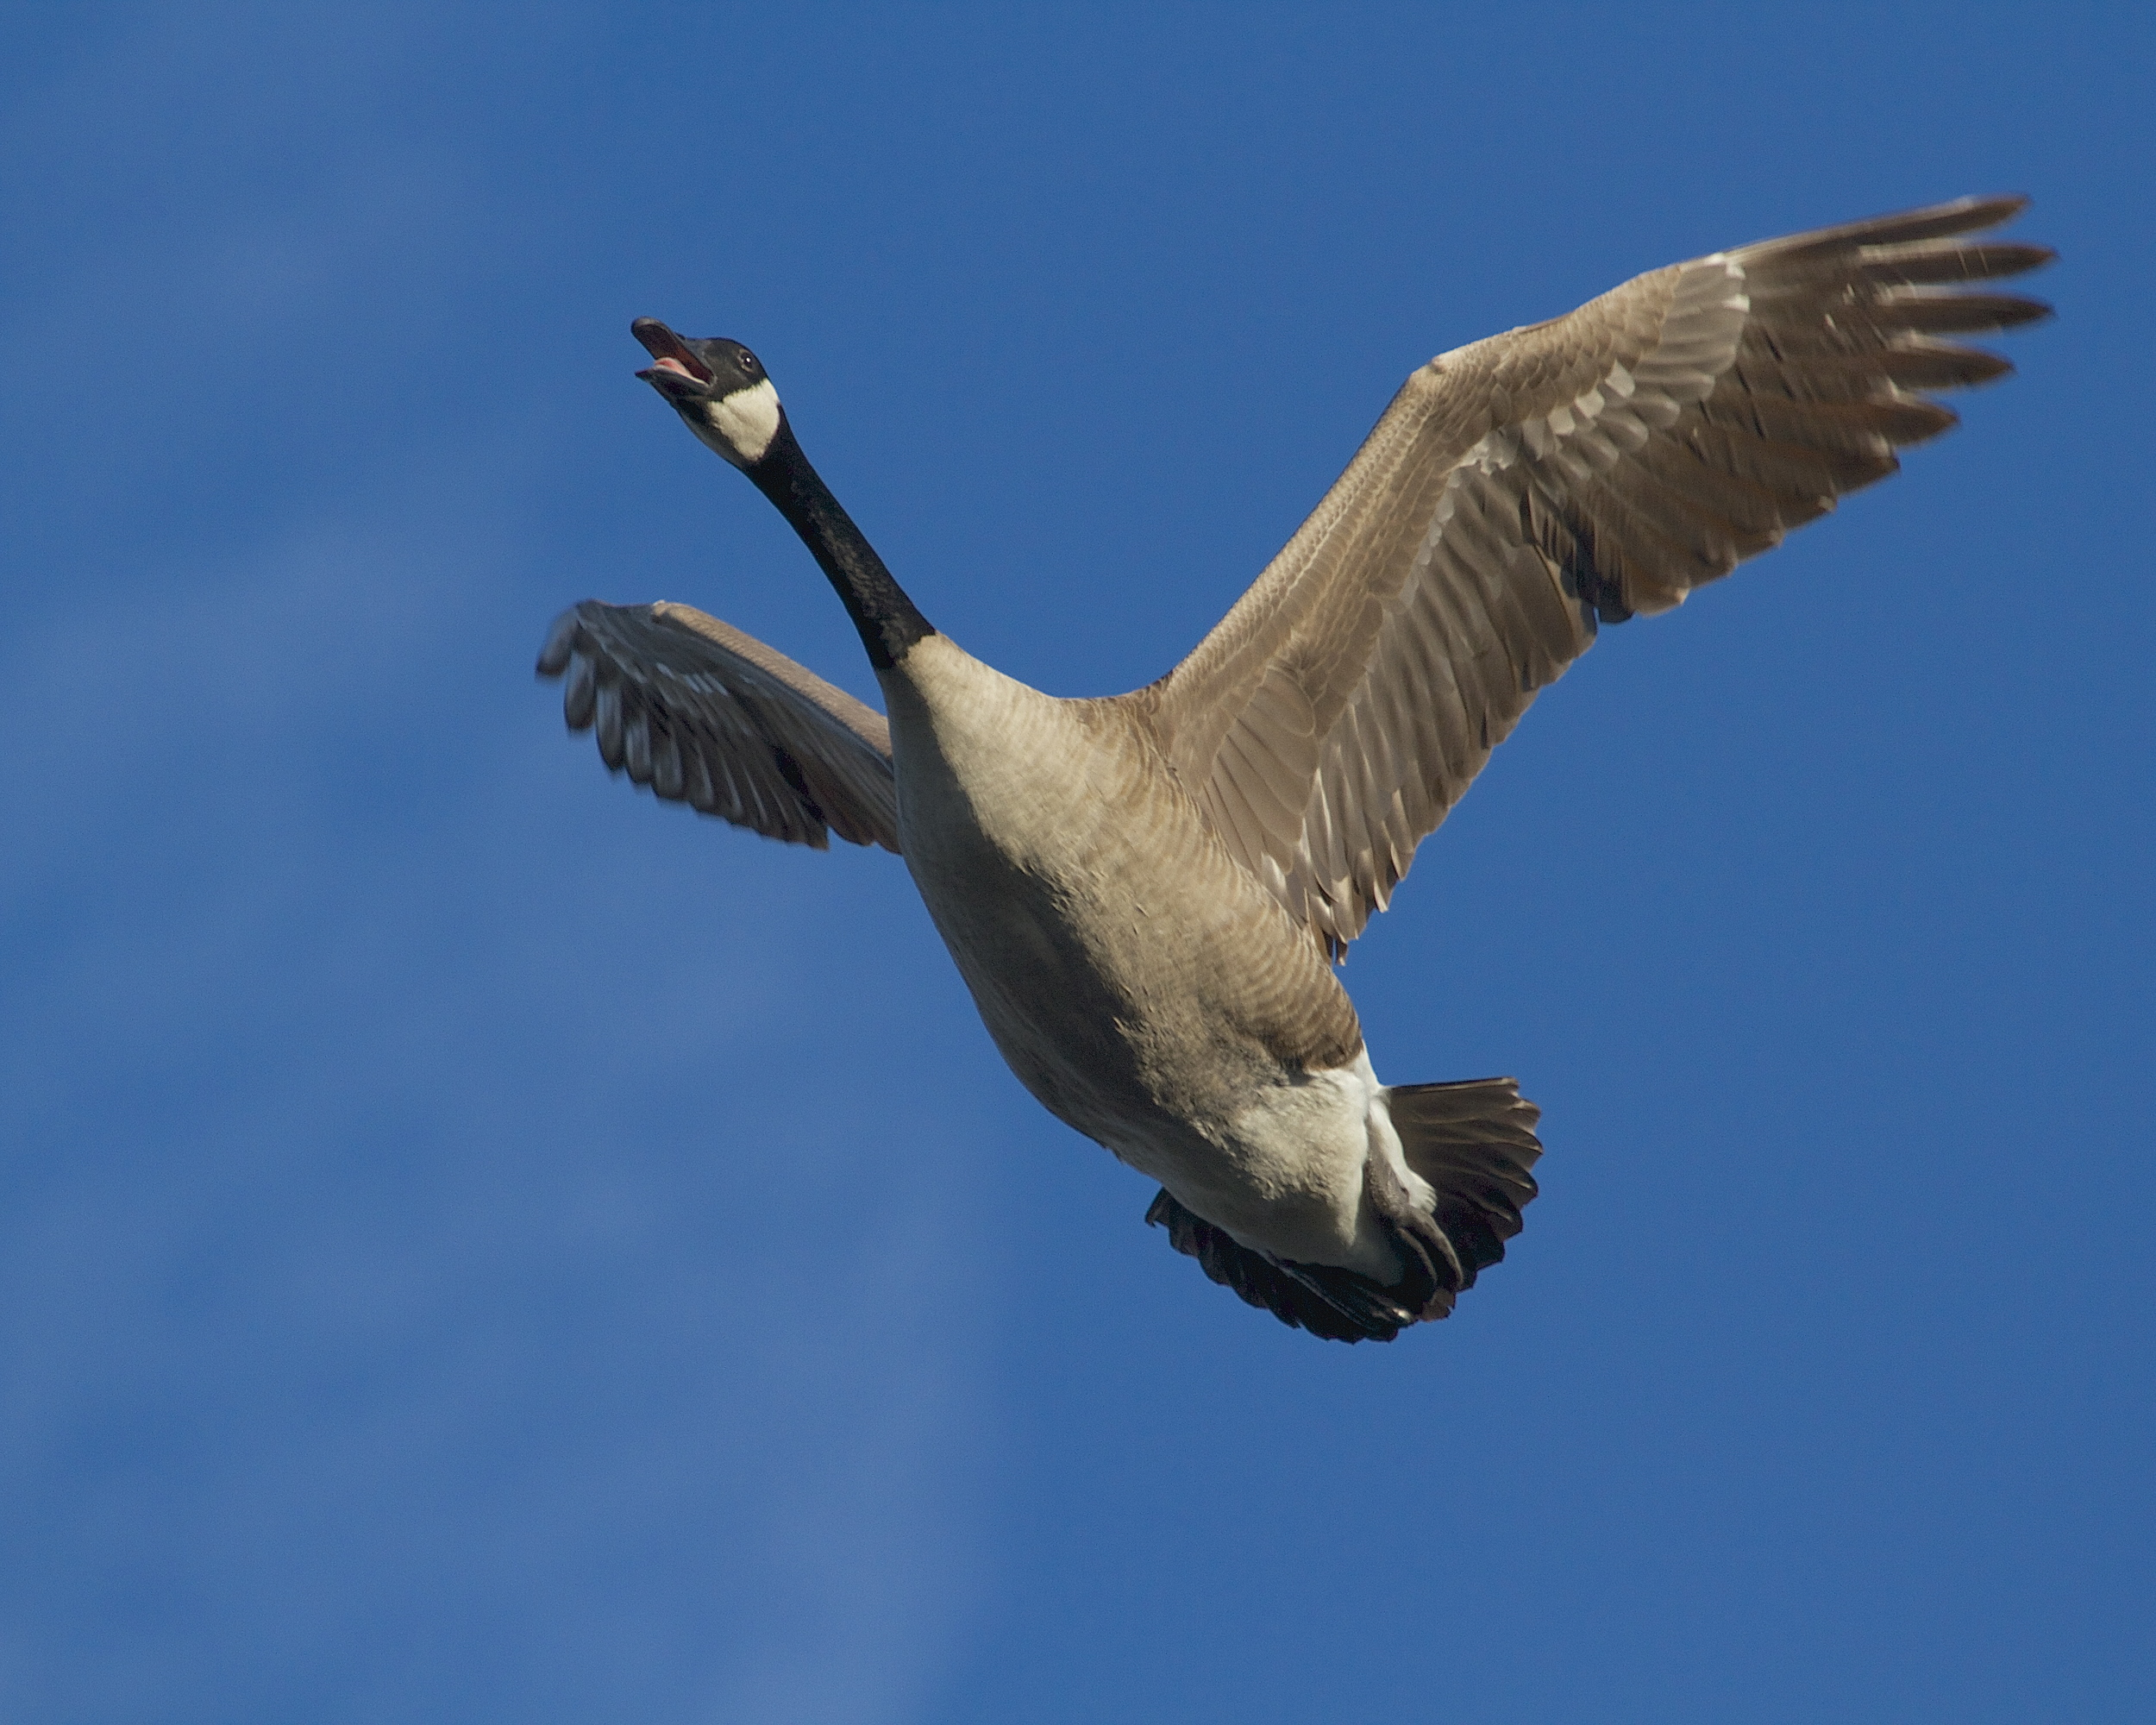 GOOSE!, tag, you're it! Canada Goose fly by.